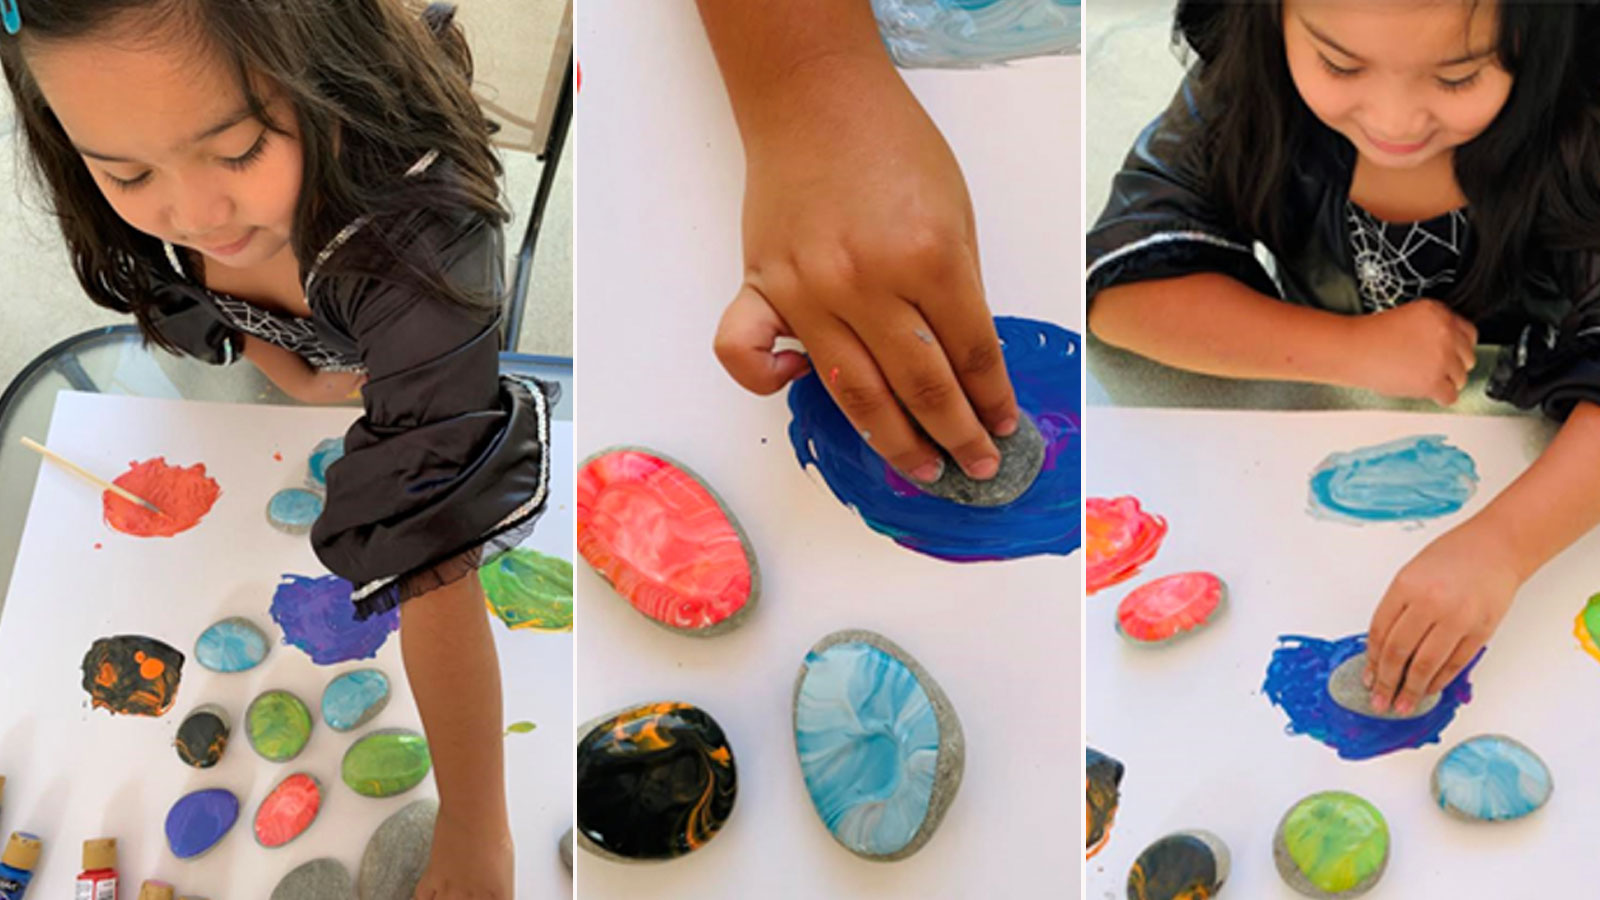 Three images showing a little girl painting rocks.